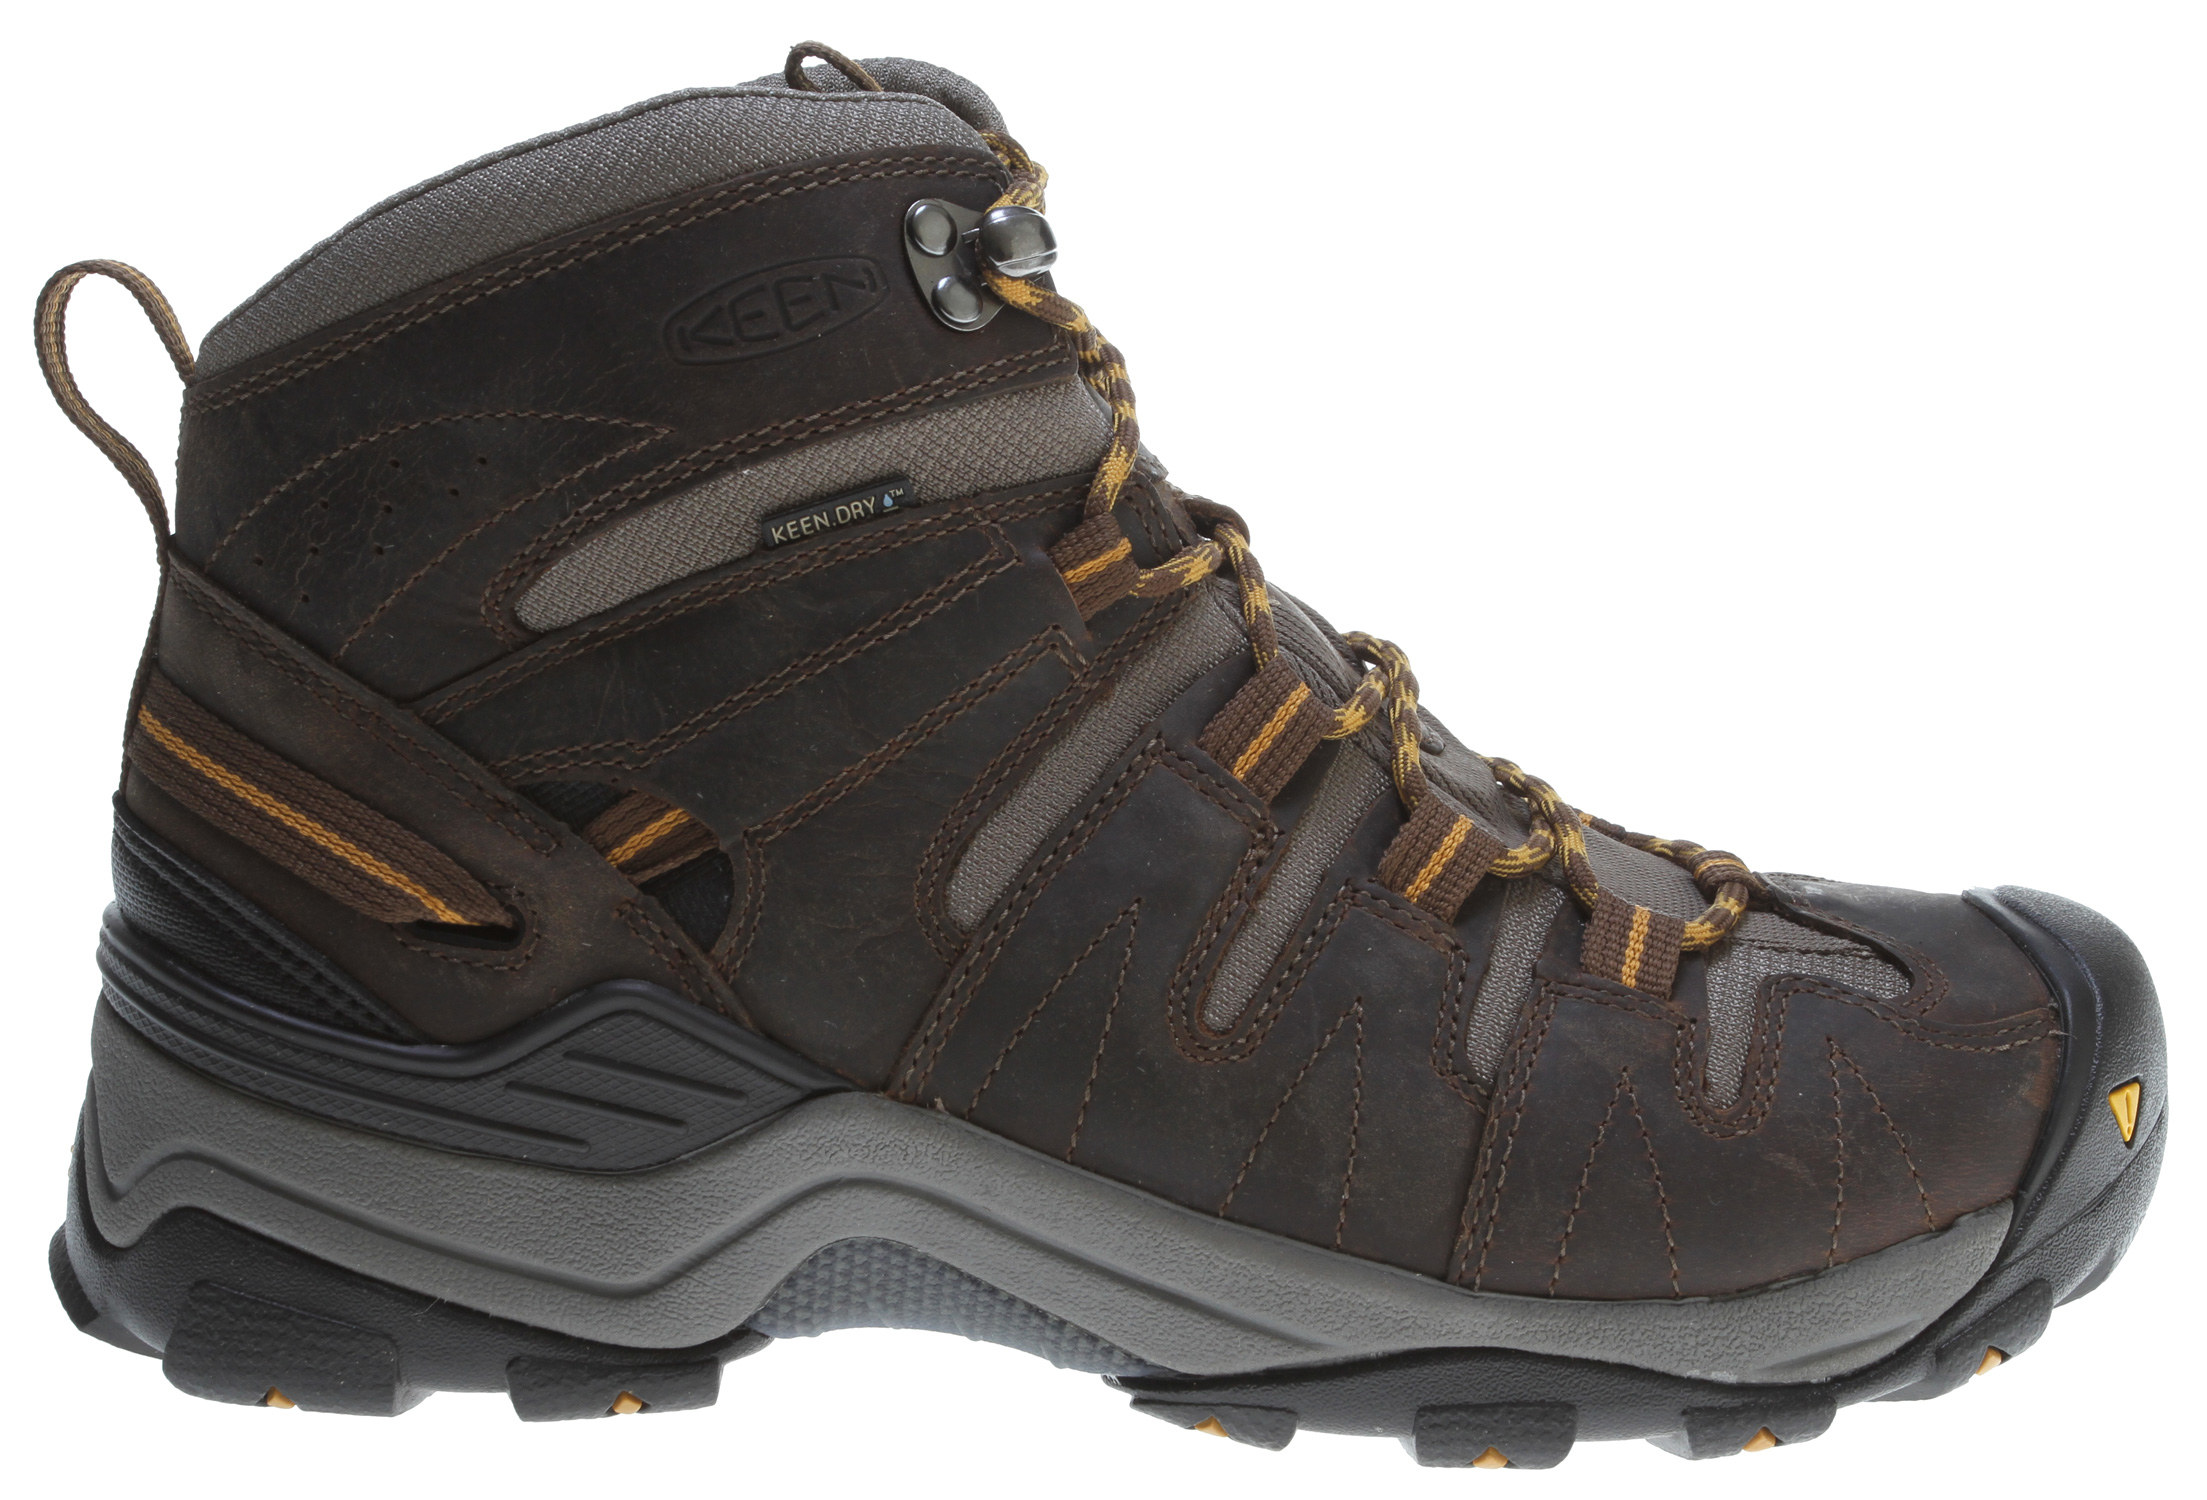 Camp and Hike Follow the trail farther afield in the Gypsum Mid, an all-terrain boot built with the technology to take you there. Featuring a wide, 4mm lugged outsole, a KEEN.ZORB strobel and KEEN.DRY waterproof breathable membrane, the Gypsum Mid delivers the stability, comfort and moisture management needed overnight hikes and winter ascents.Key Features of the Keen Gypsum Mid Hiking Shoes: Fit Tip: We find this style runs about a 1/2 size small. Upper: Waterproof nubuck leather and breathable mesh Rubber: Non-marking rubber outsole Activities: Hiking Type: Boots, Lace Up Weather: Wet – waterproof 4mm multi directional traction lugs KEEN.DRY™ waterproof breathable membrane KEEN.Zorb Strobel Non-marking rubber outsole Removable metatomical dual density EVA footbed Torsion stability ESS shank TPU heel stabilizer Waterproof nubuck upper KEEN.DRY: A proprietary waterproof, breathable membrane that lets vapor out without letting water in. - $97.95